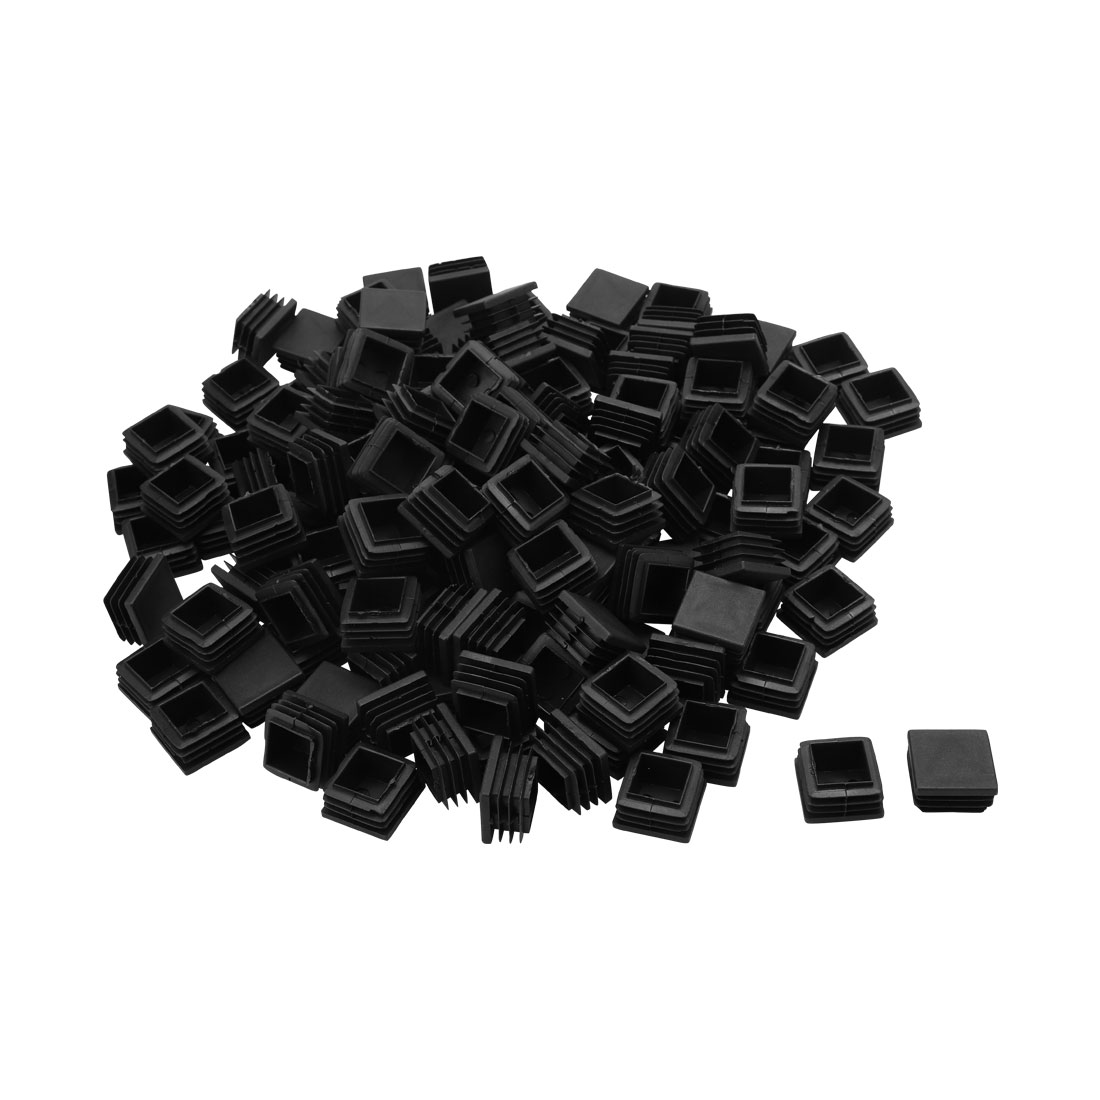 Floor No Scratch Square Chair Leg Pipe Tube Insert Cover Black 28 x 28mm 50pcs